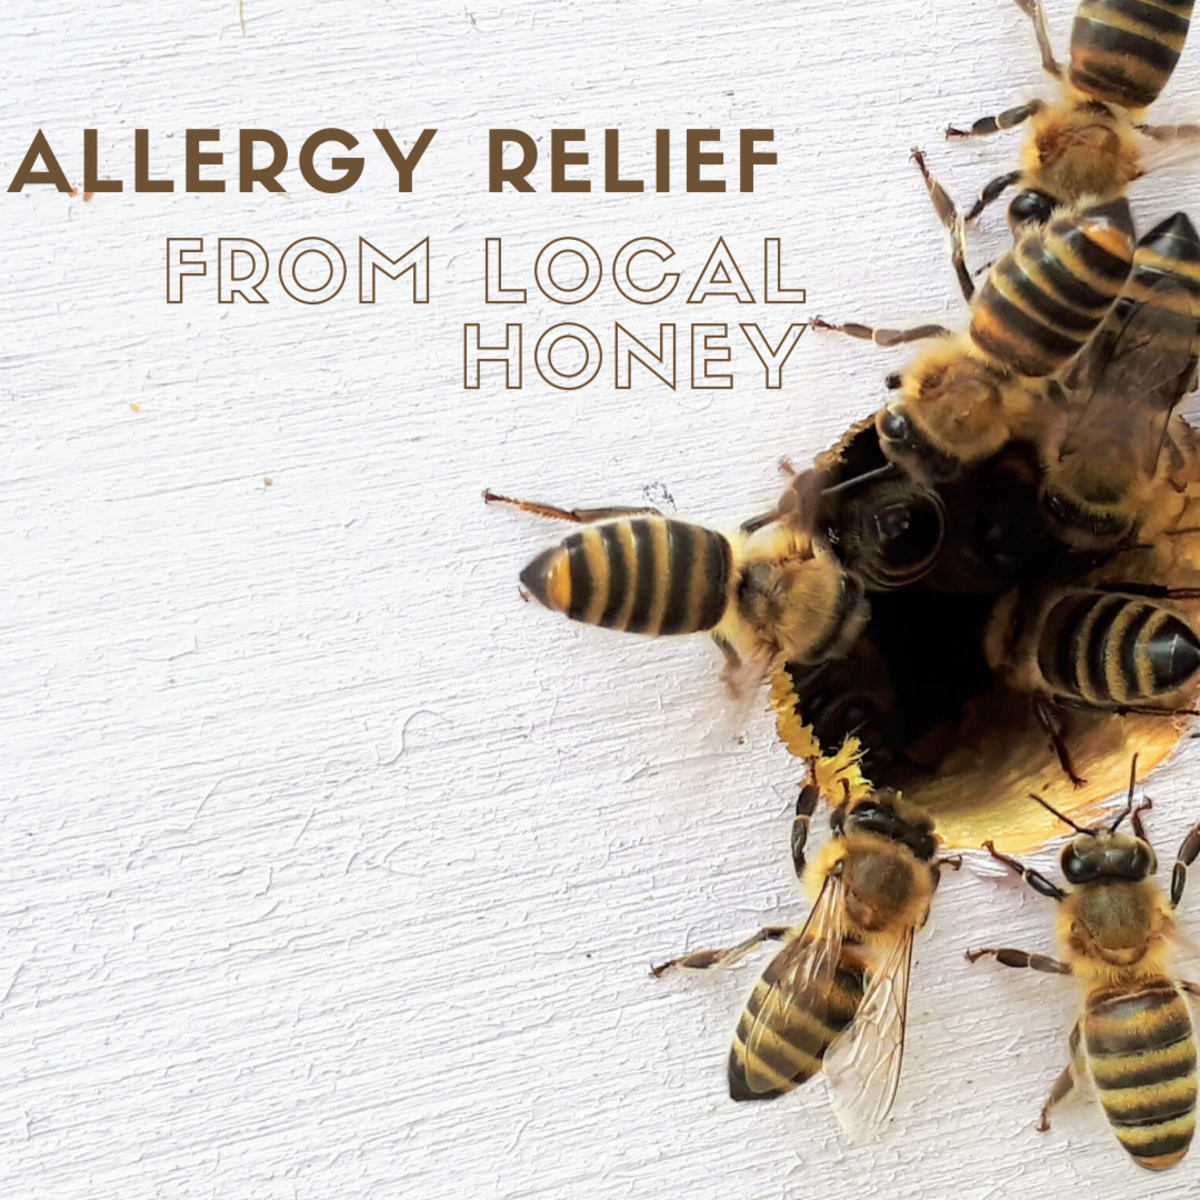 Benefits From Local Raw Honey for Allergy Relief